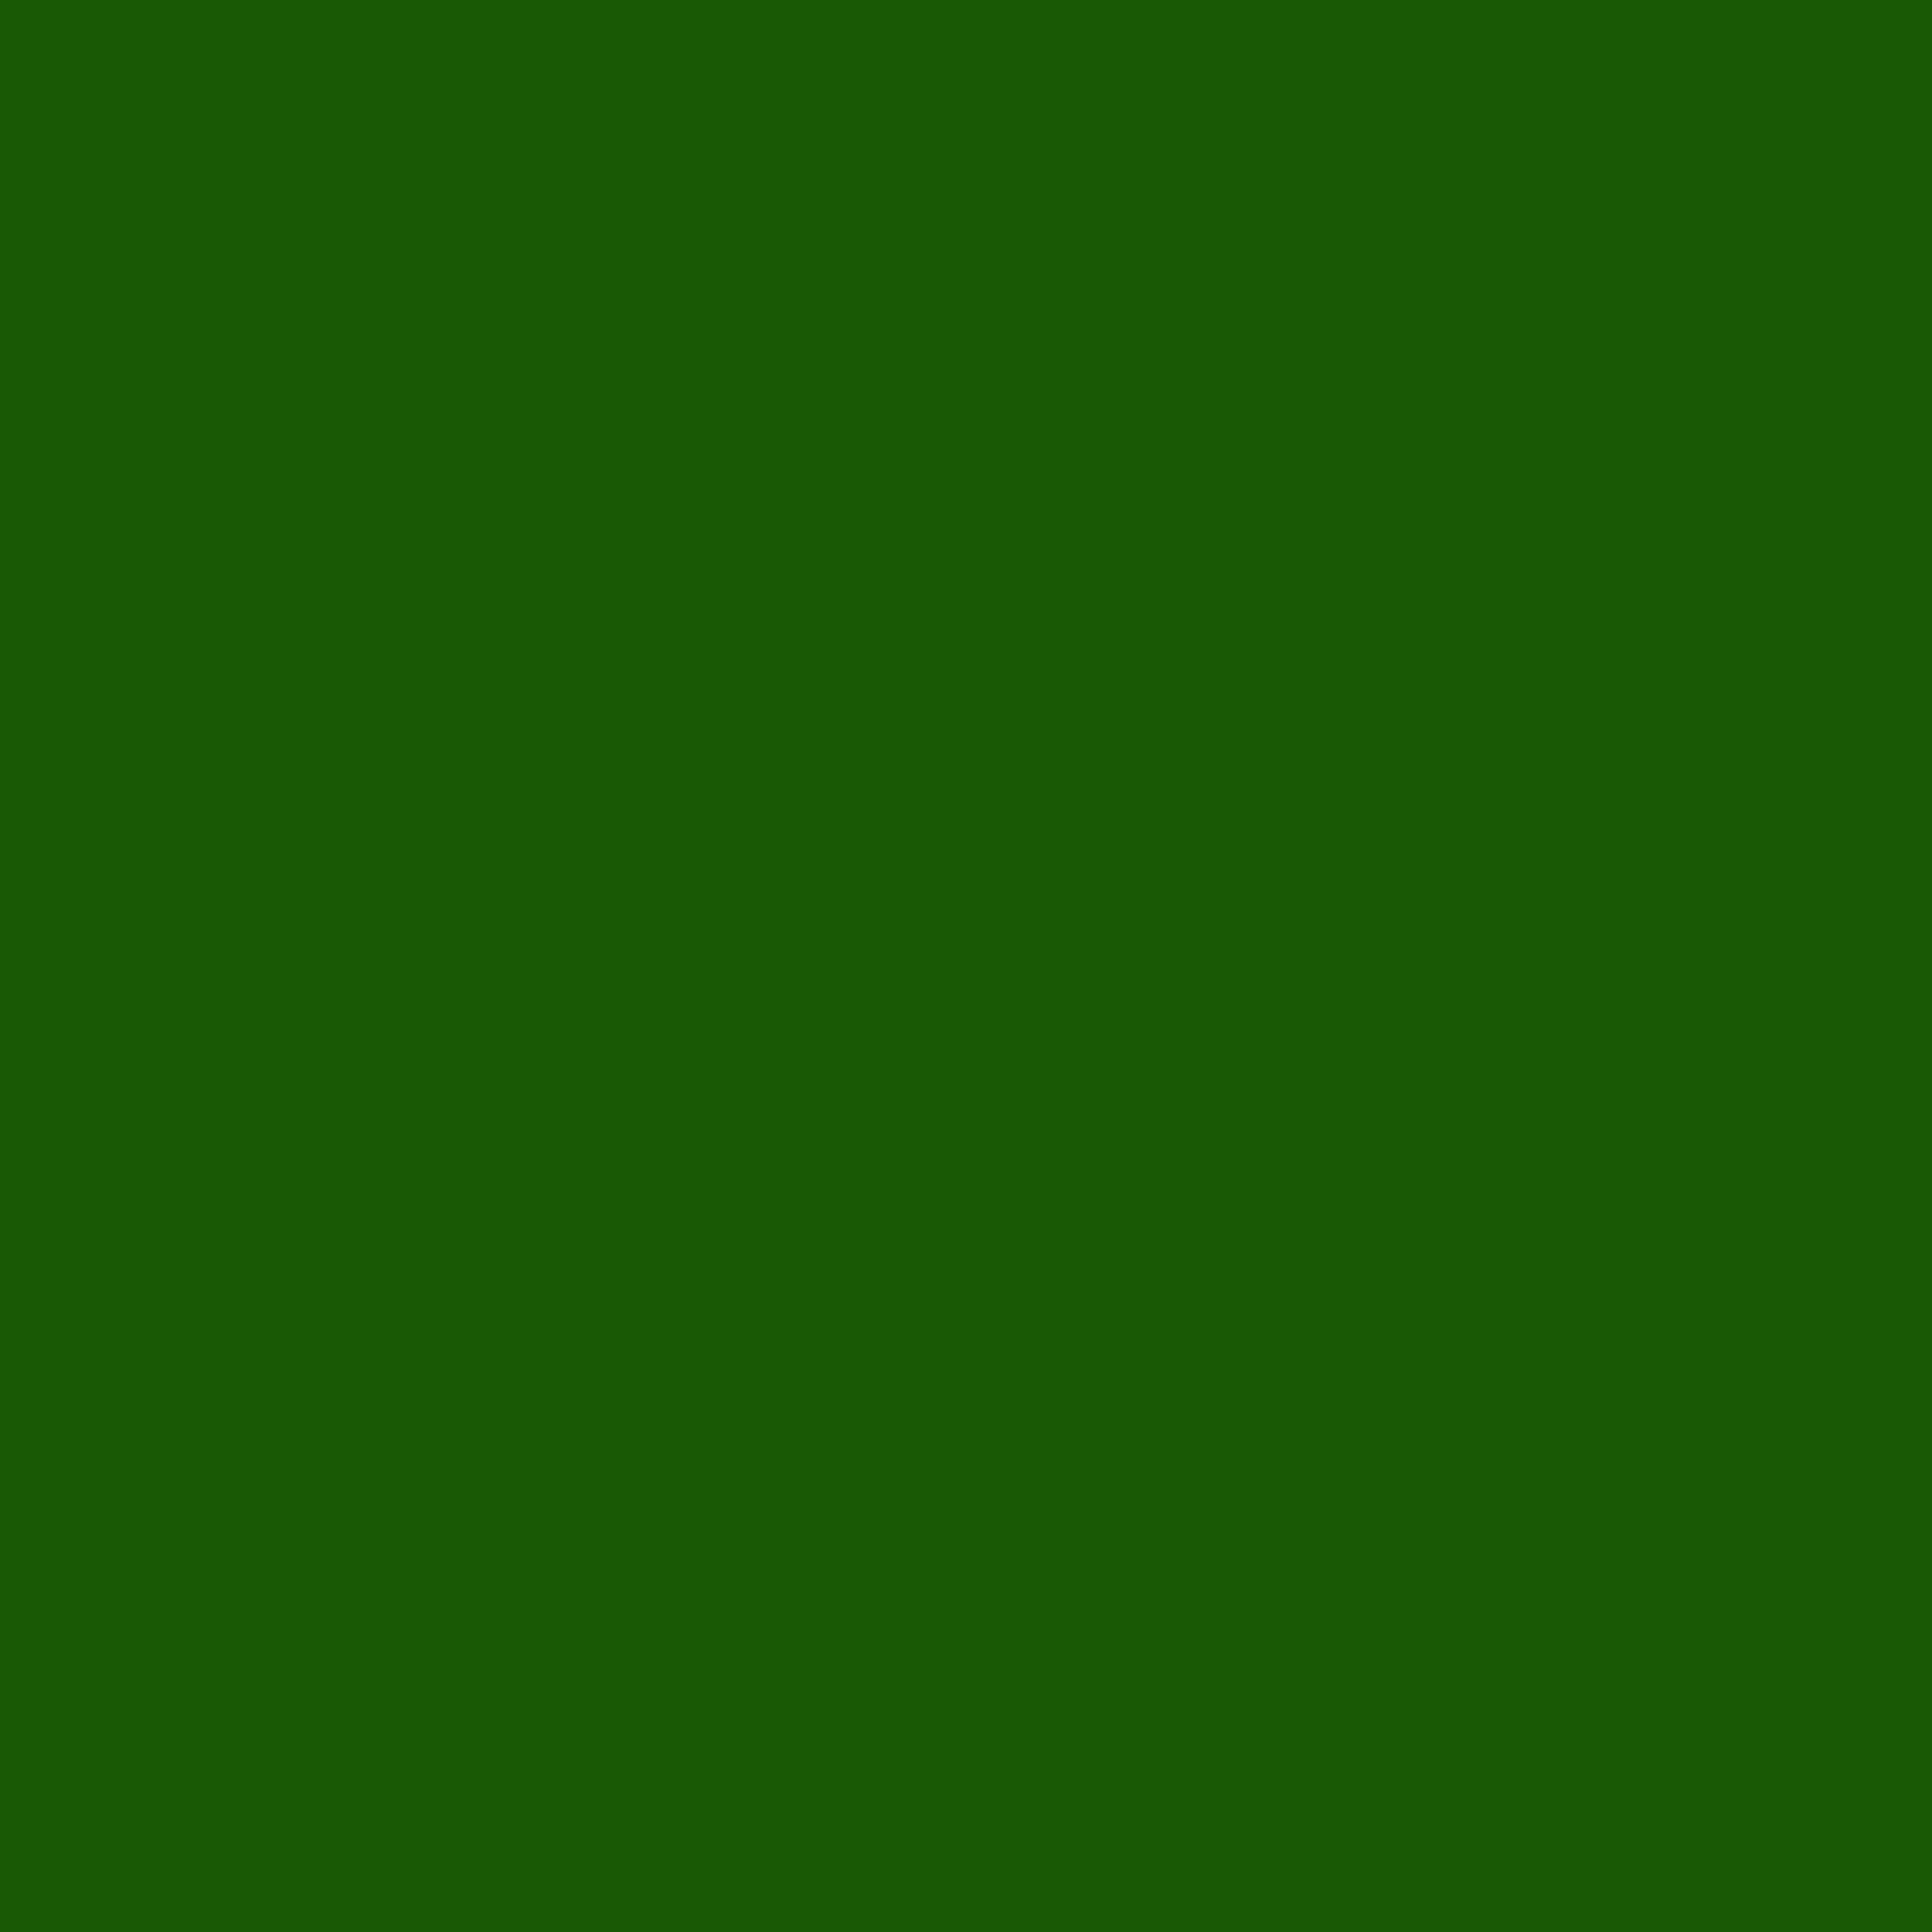 2048x2048 Lincoln Green Solid Color Background